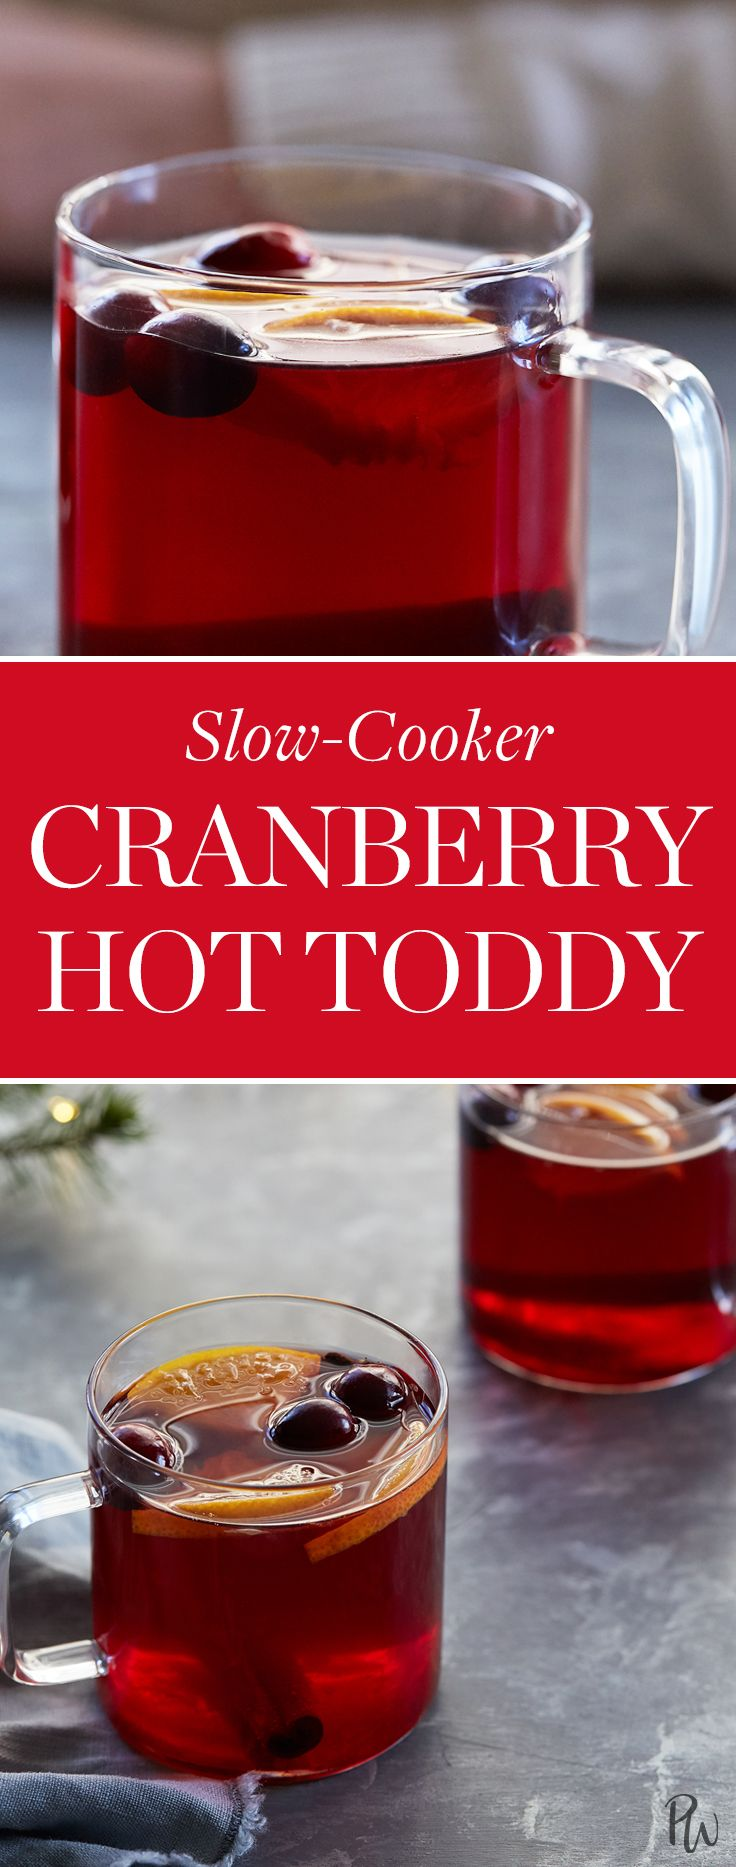 Slow-Cooker Cranberry Hot Toddy  #purewow #recipe #holiday #cocktail #food #christmas #new year